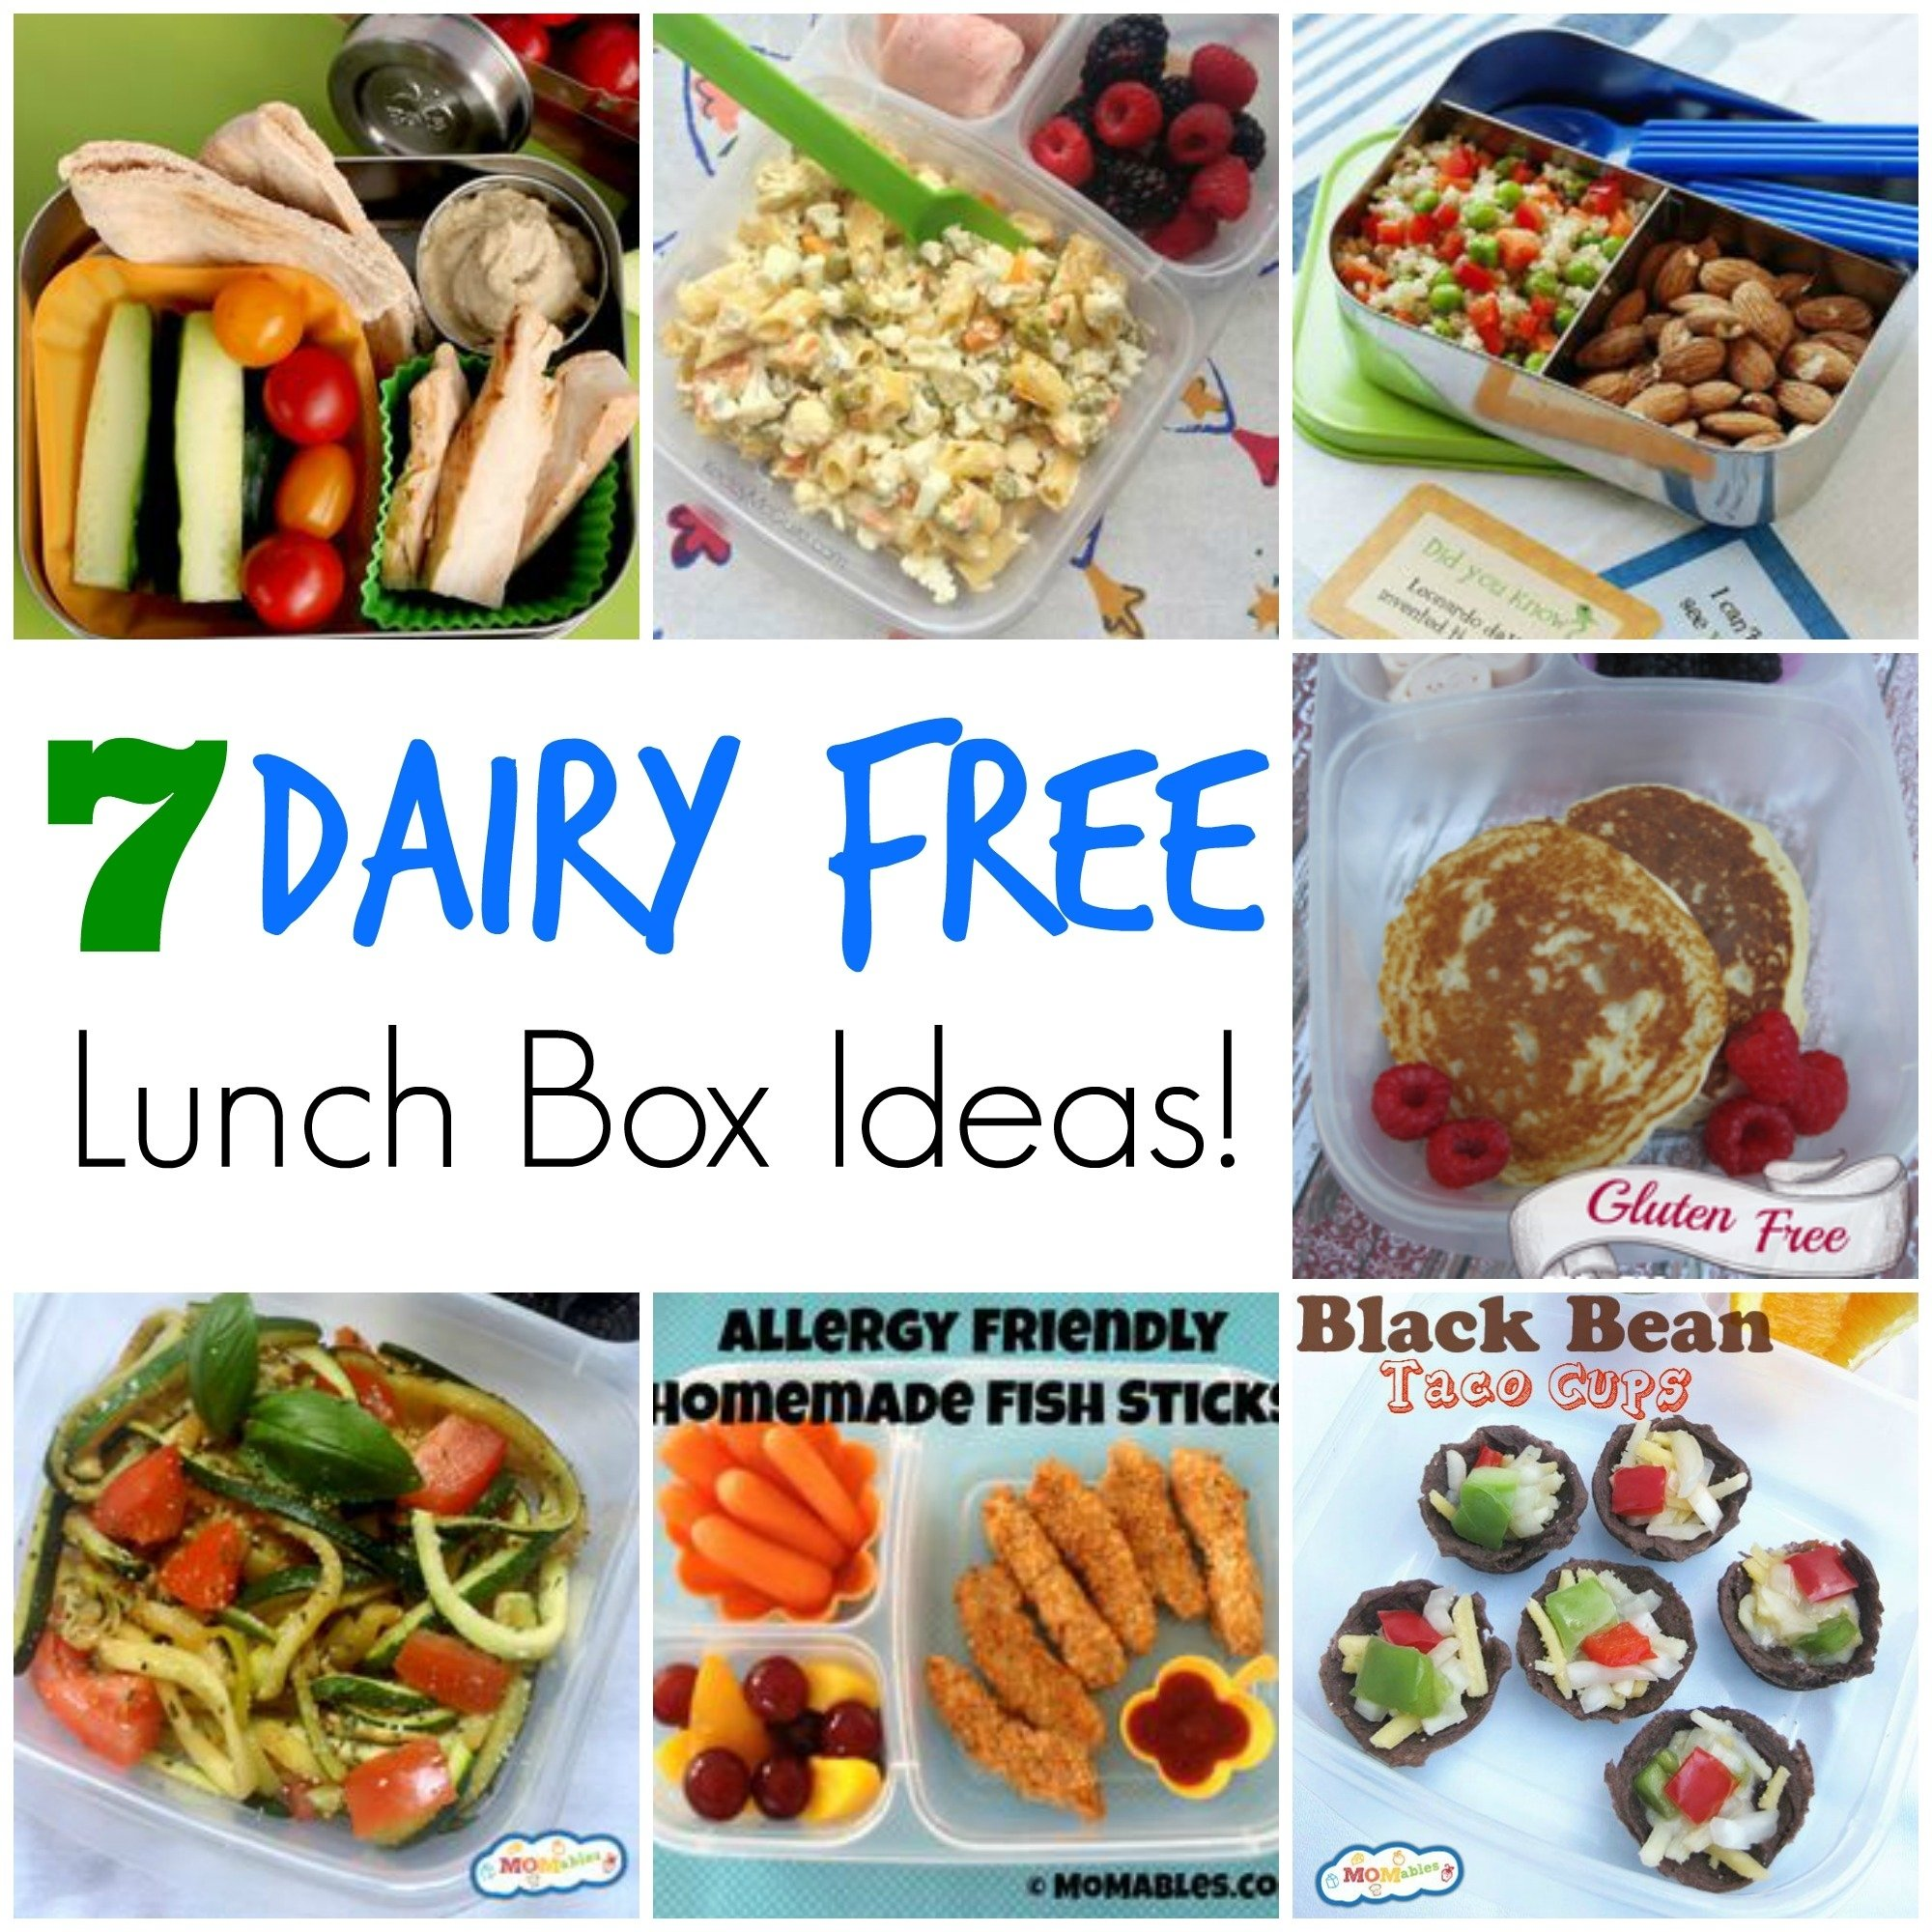 10 Nice Lunch Ideas For School Lunch Box 7 dairy free school lunch ideas 3 2020